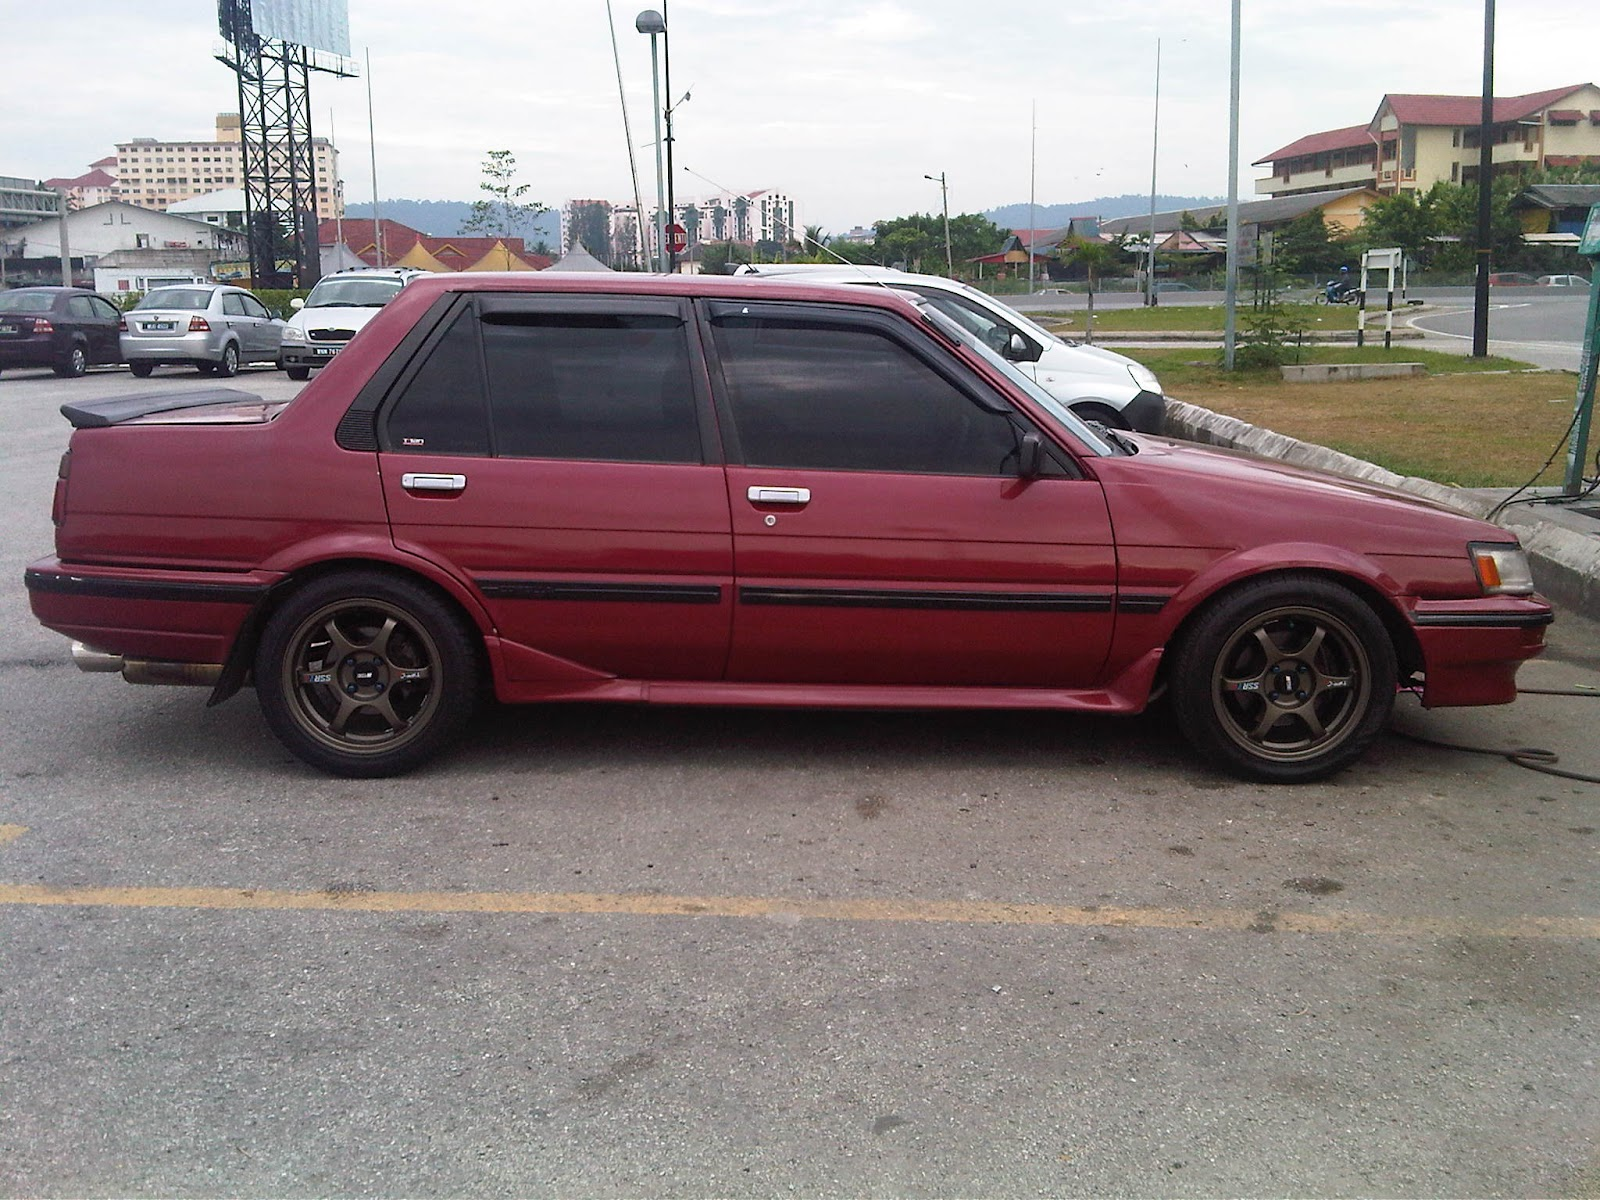 4age Power For Sale Toyota Le 4age Silvertop 20v